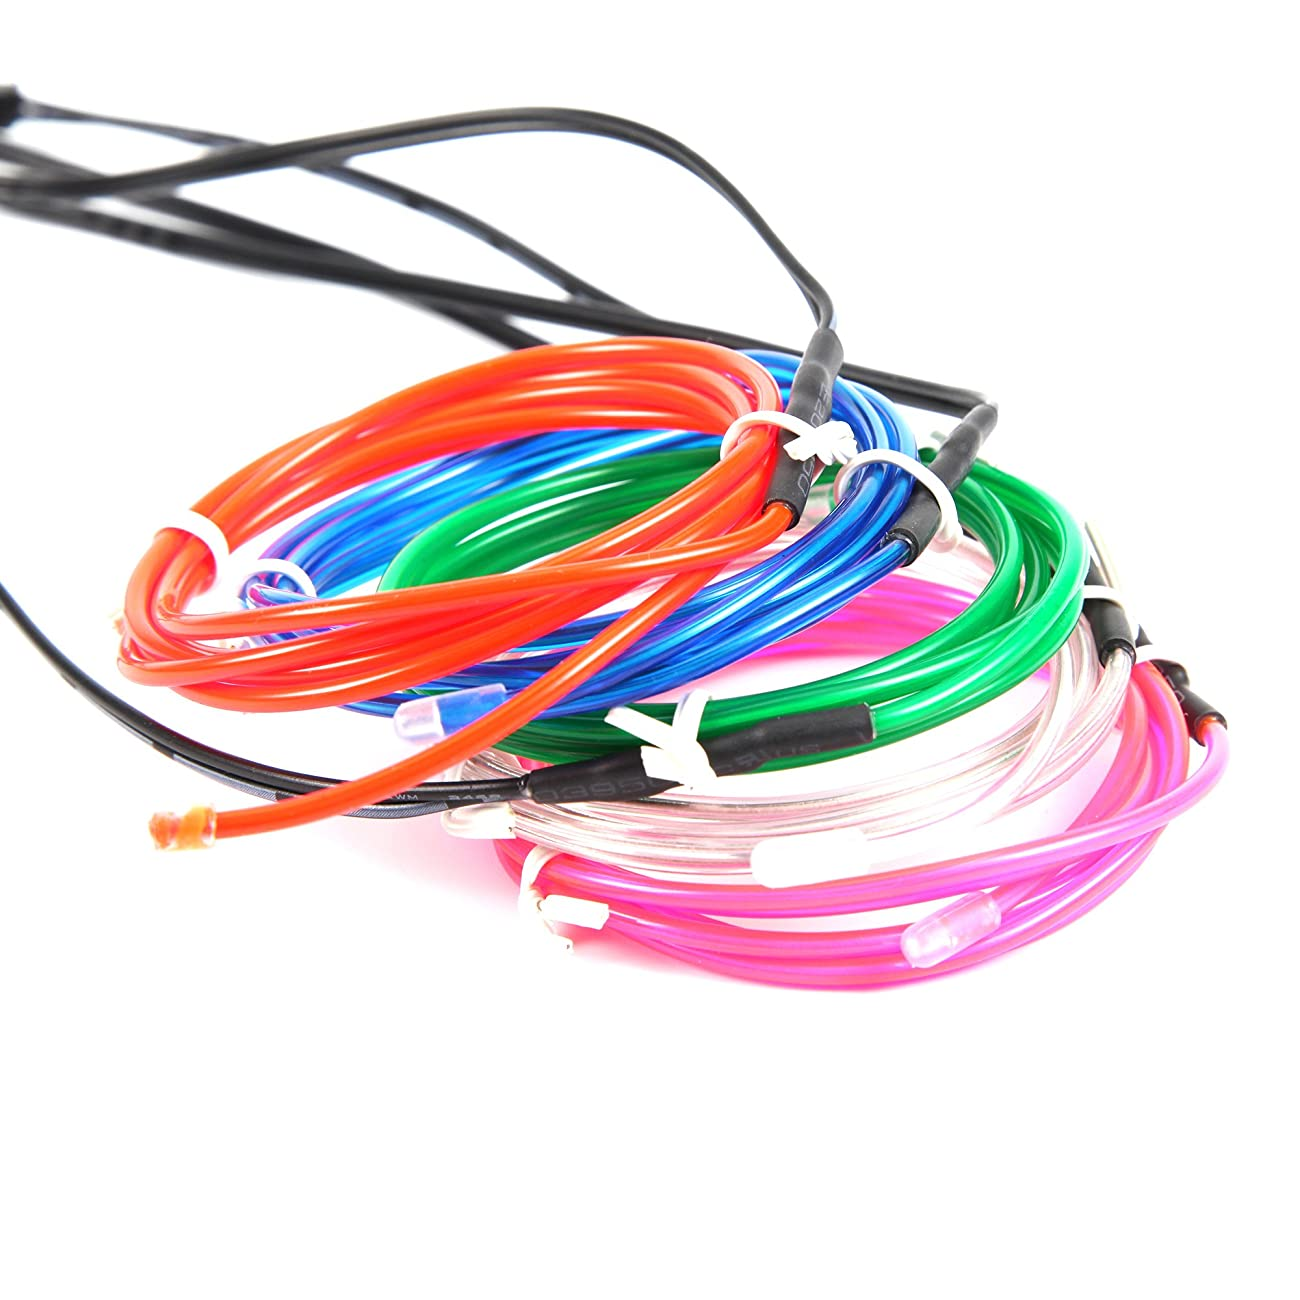 Exlight 5 X 1 Metre Neon Light El Wire- New Drive Electroluminescent Multiple Color-Set of 5(Blue, Green, Red, Pink, and White) 5